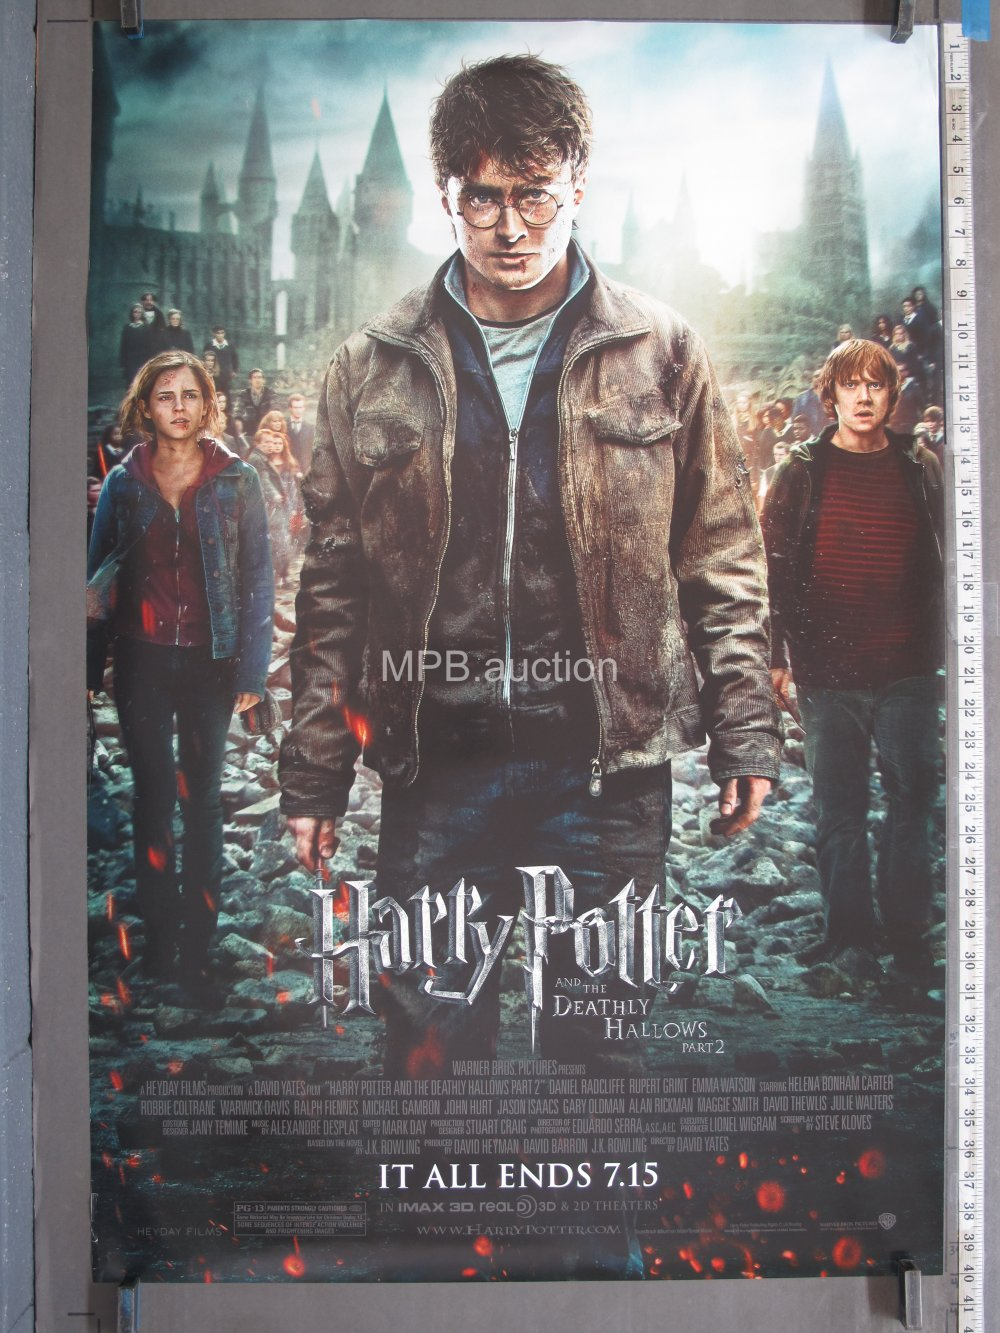 Harry Potter And The Deathly Hallows Part 2 2011 Original Ds Advance Movie Poster For Sale